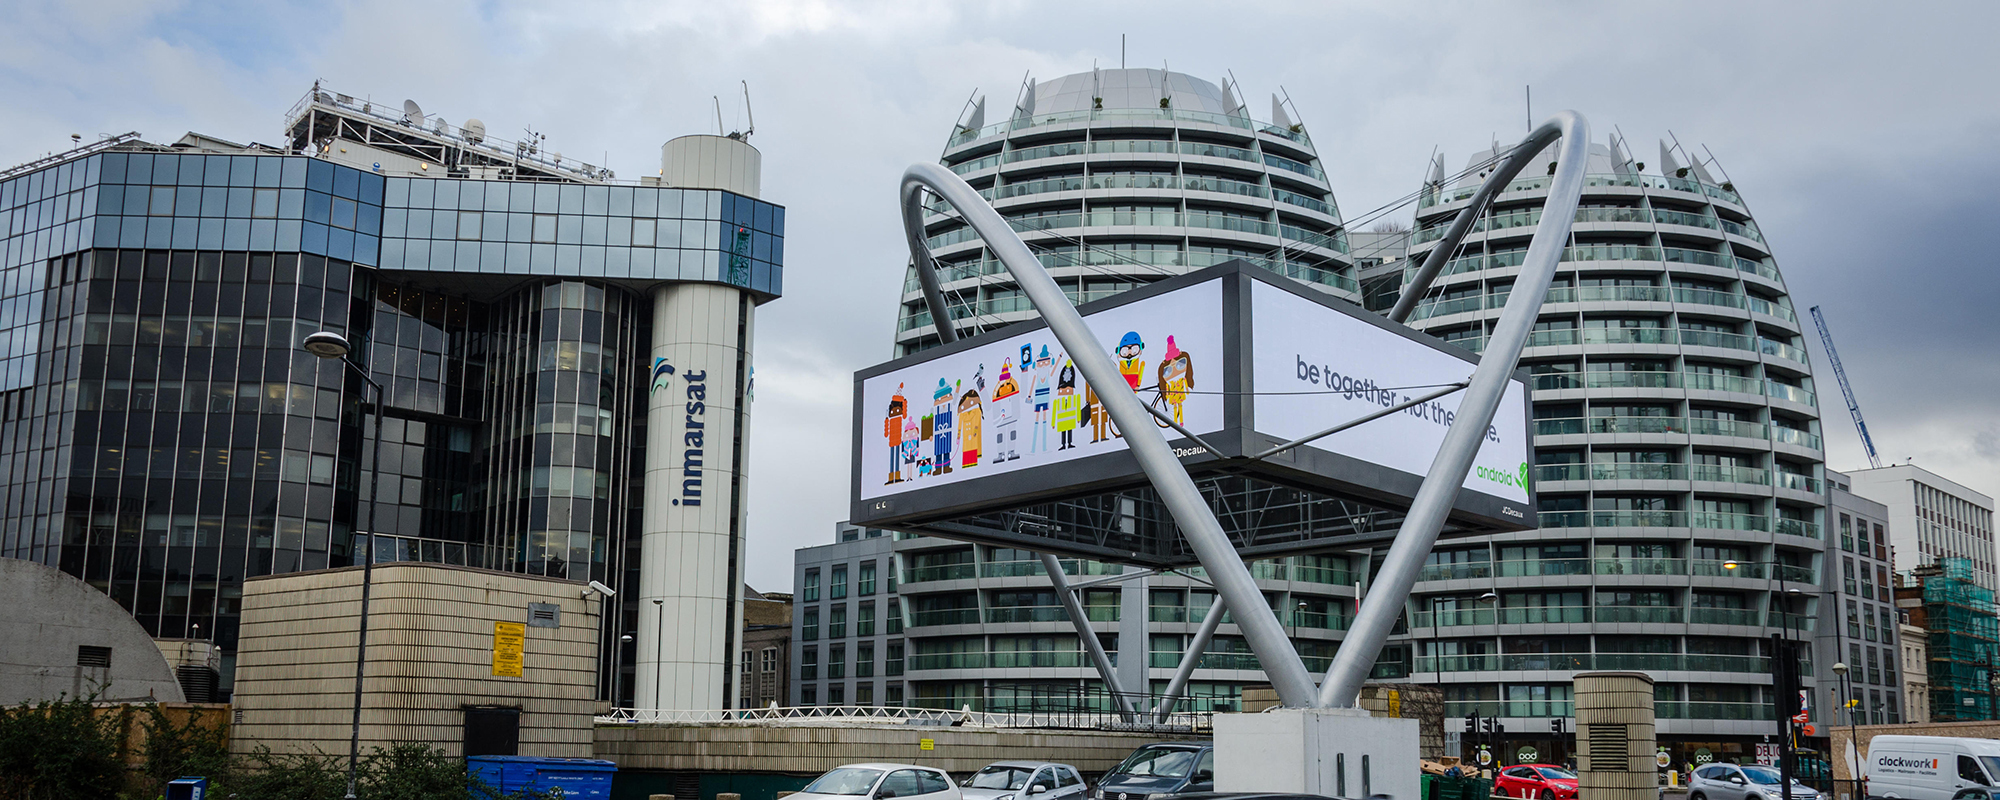 Silicon Roundabout in Old Street, Shoreditch is a tech cluster that has remained deprived. Getty